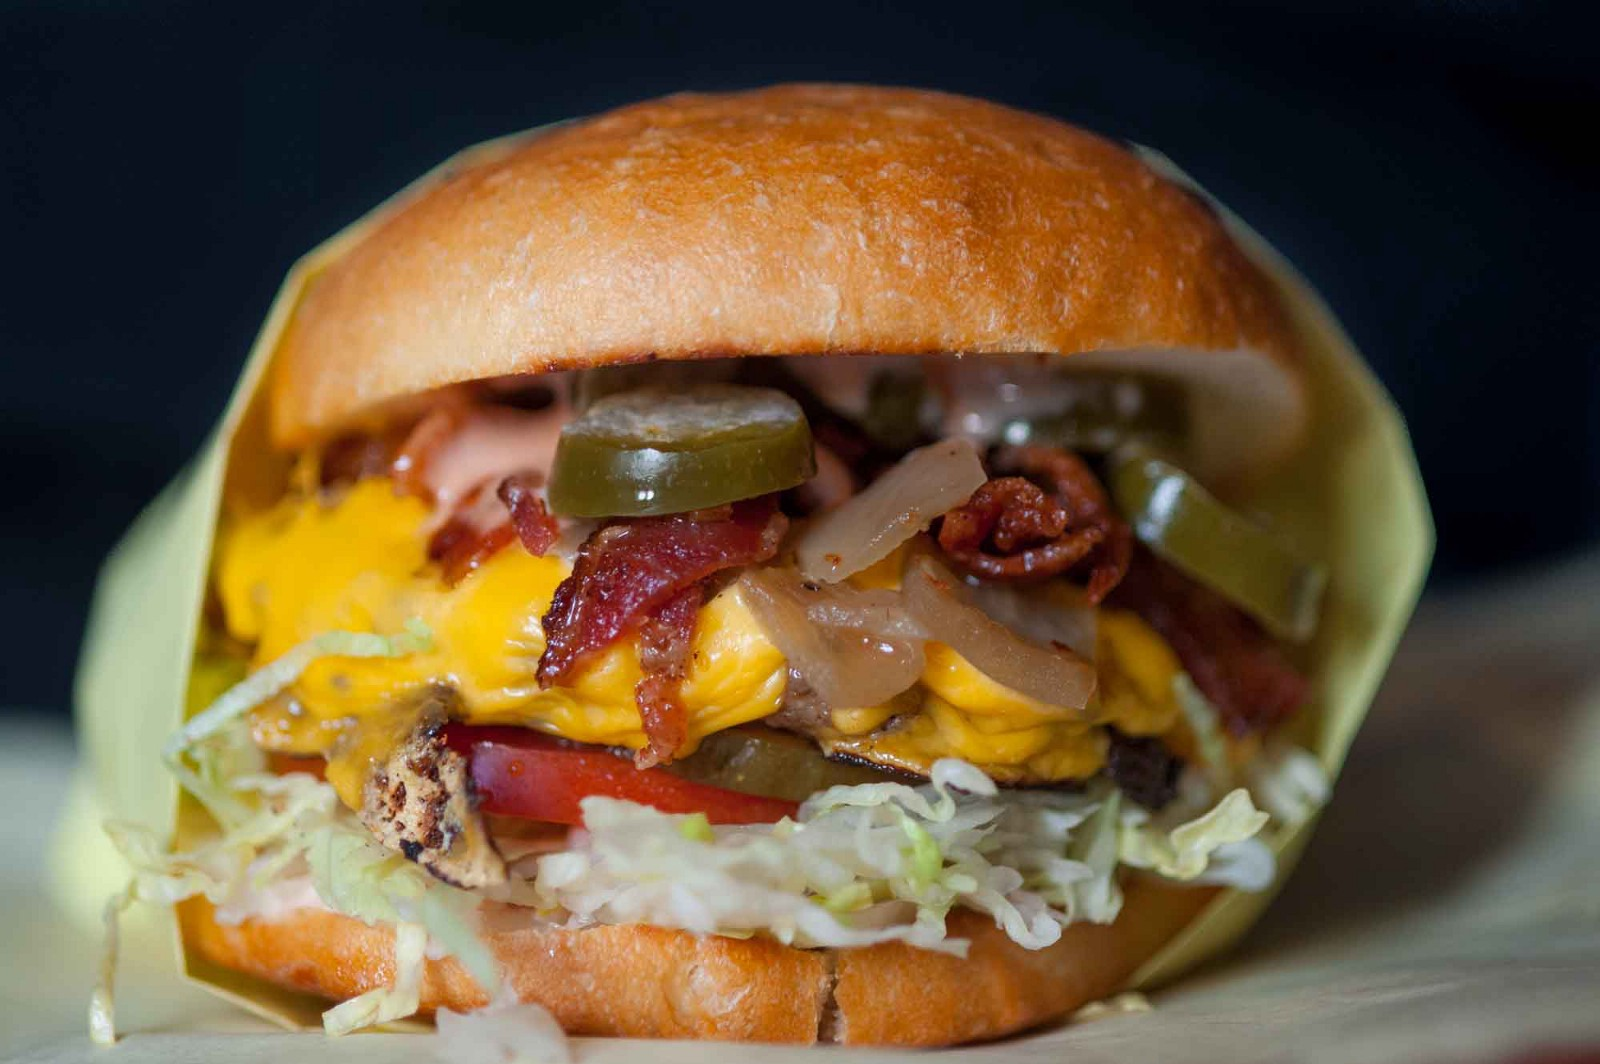 The Most Freakishly Delicious Cheeseburgers in San